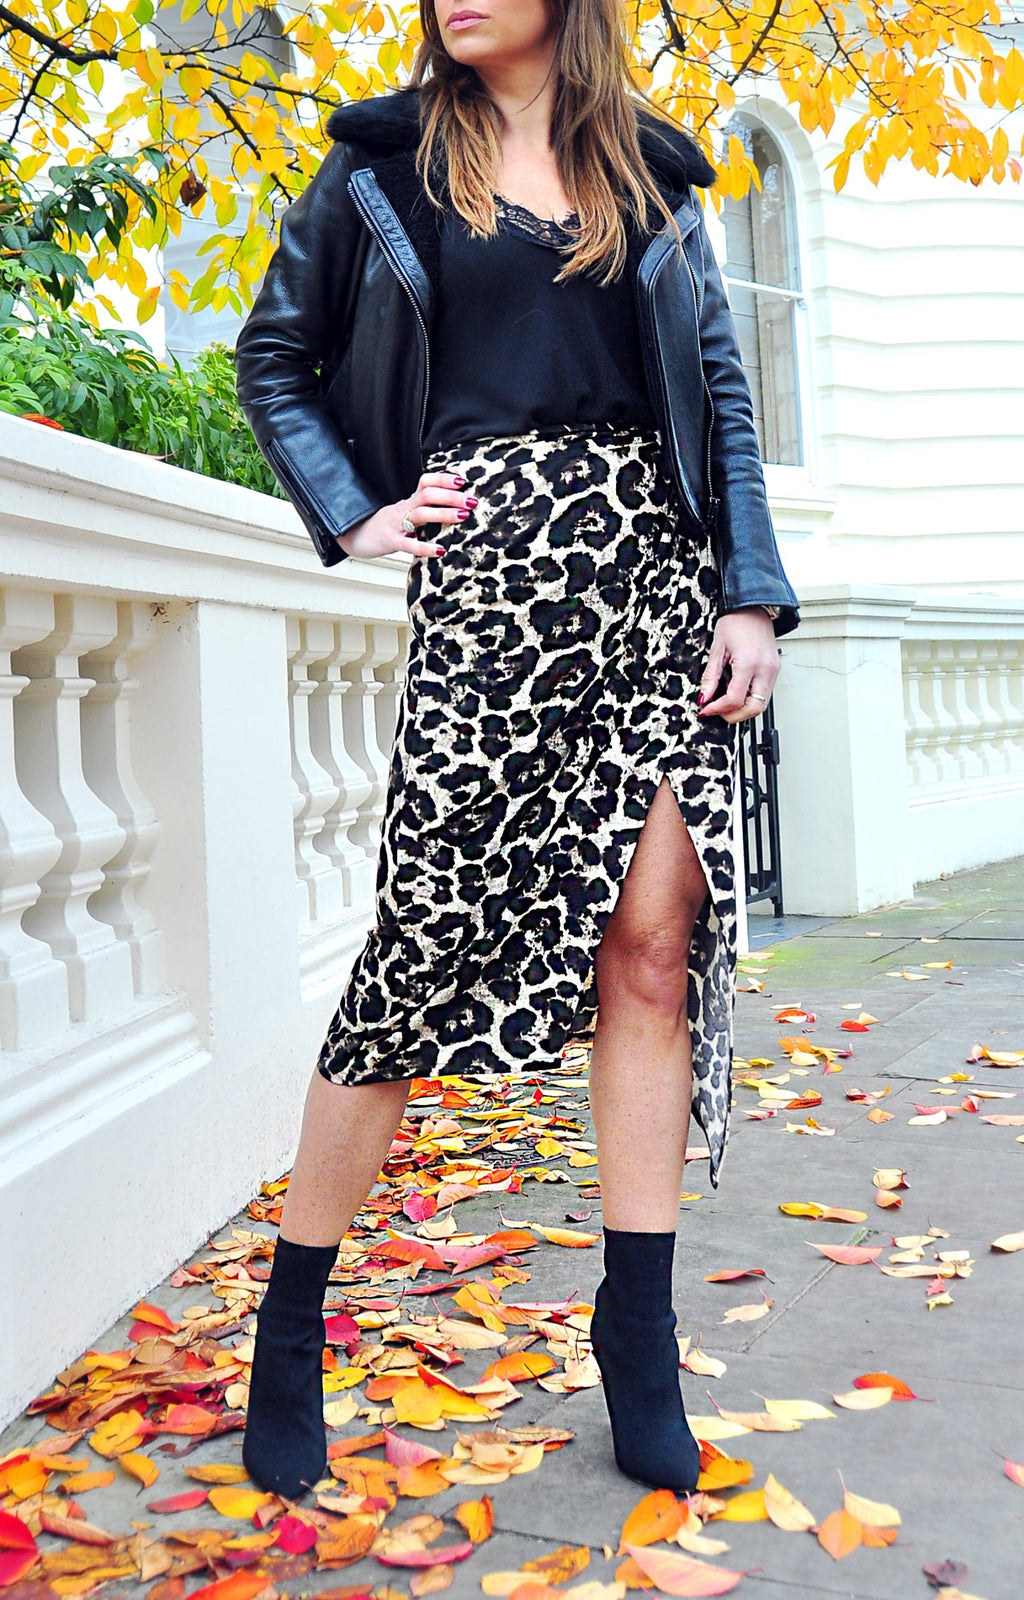 ZAZA SKIRT in Winter Leopard